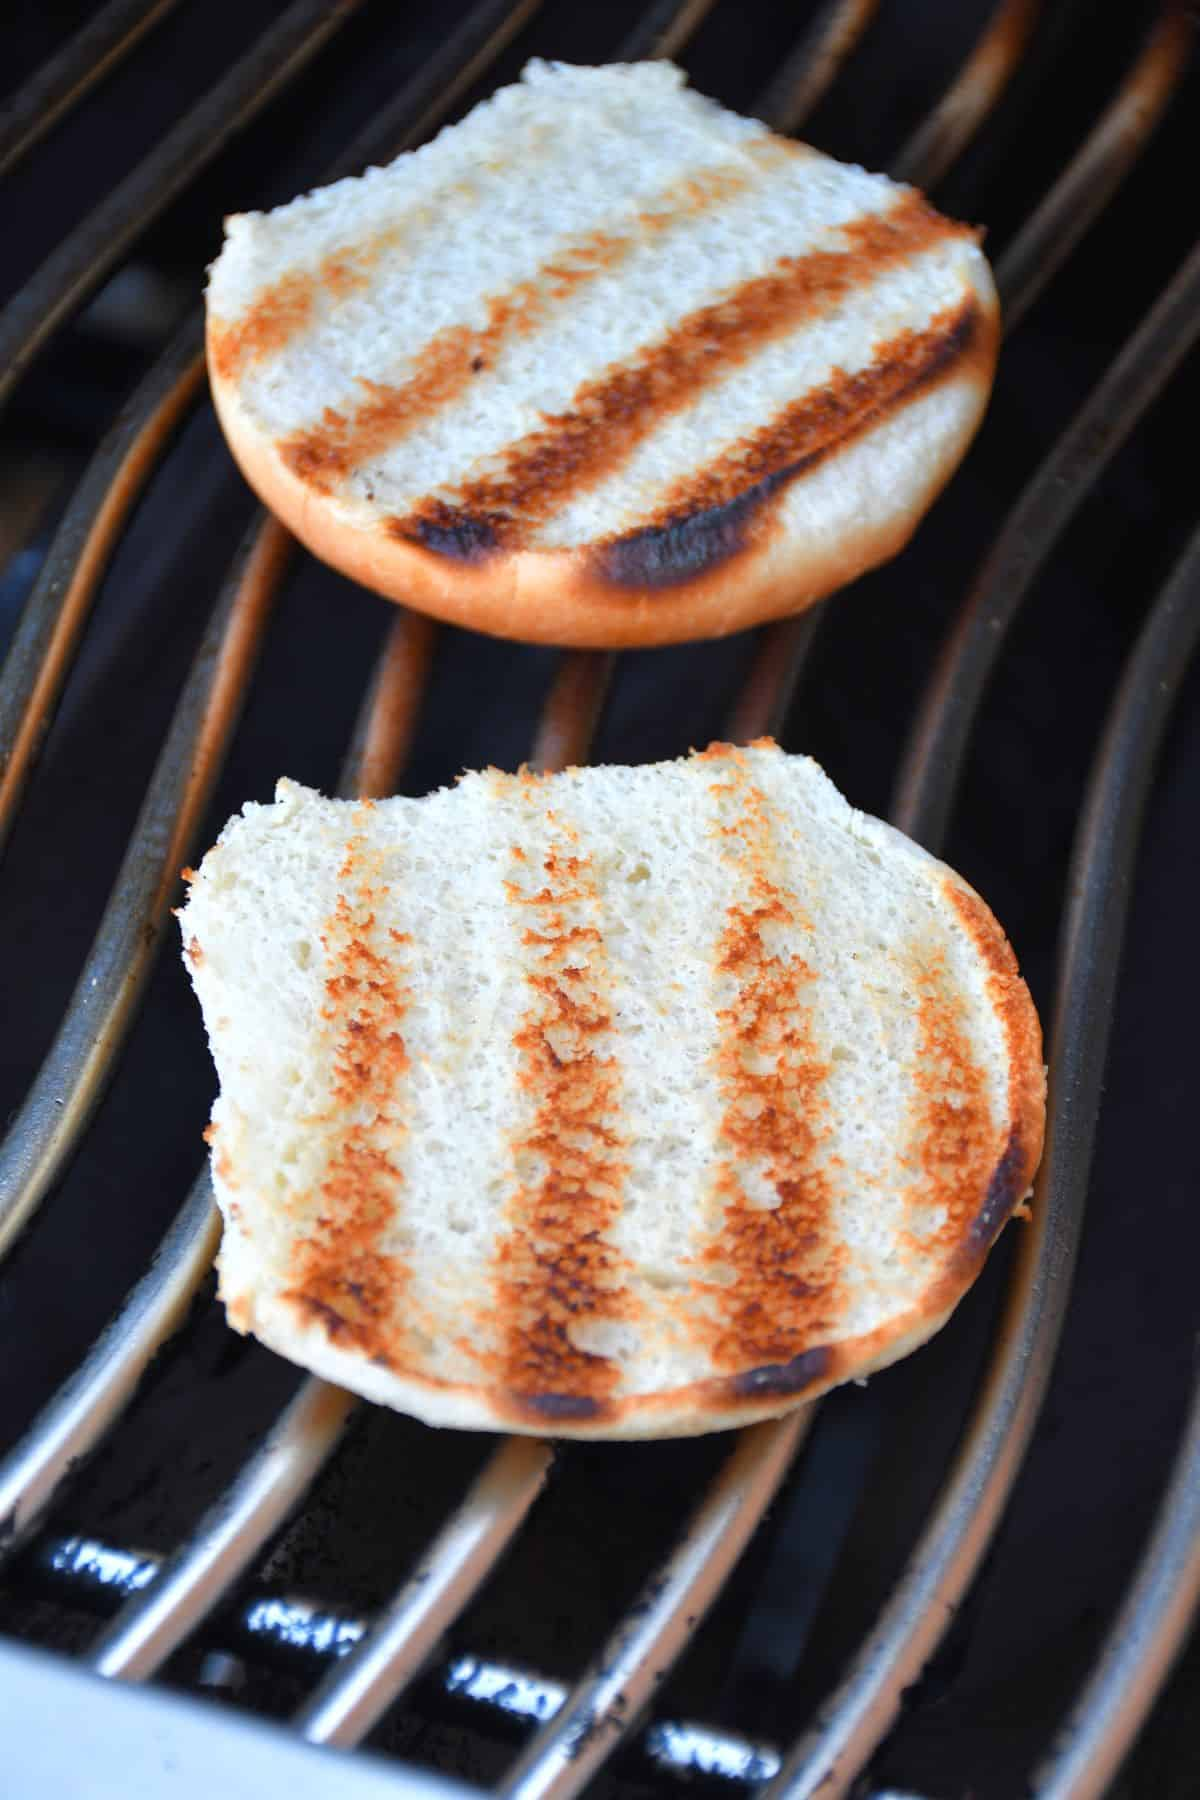 Grilled burger buns on the BBQ grid.